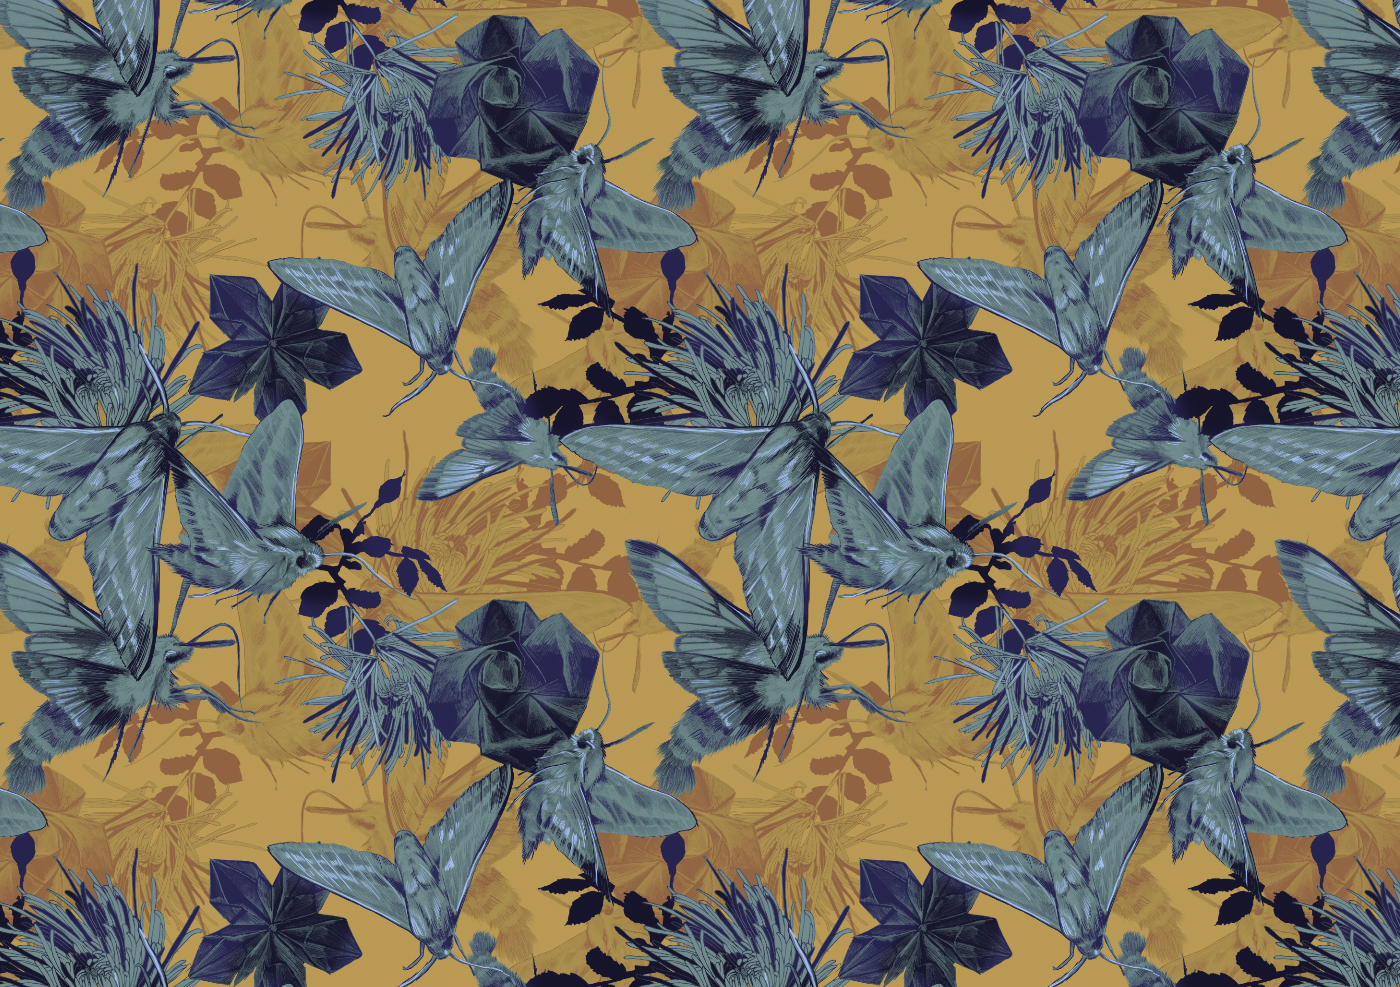 fig 1. Repeat pattern with moths and origami paper flowers